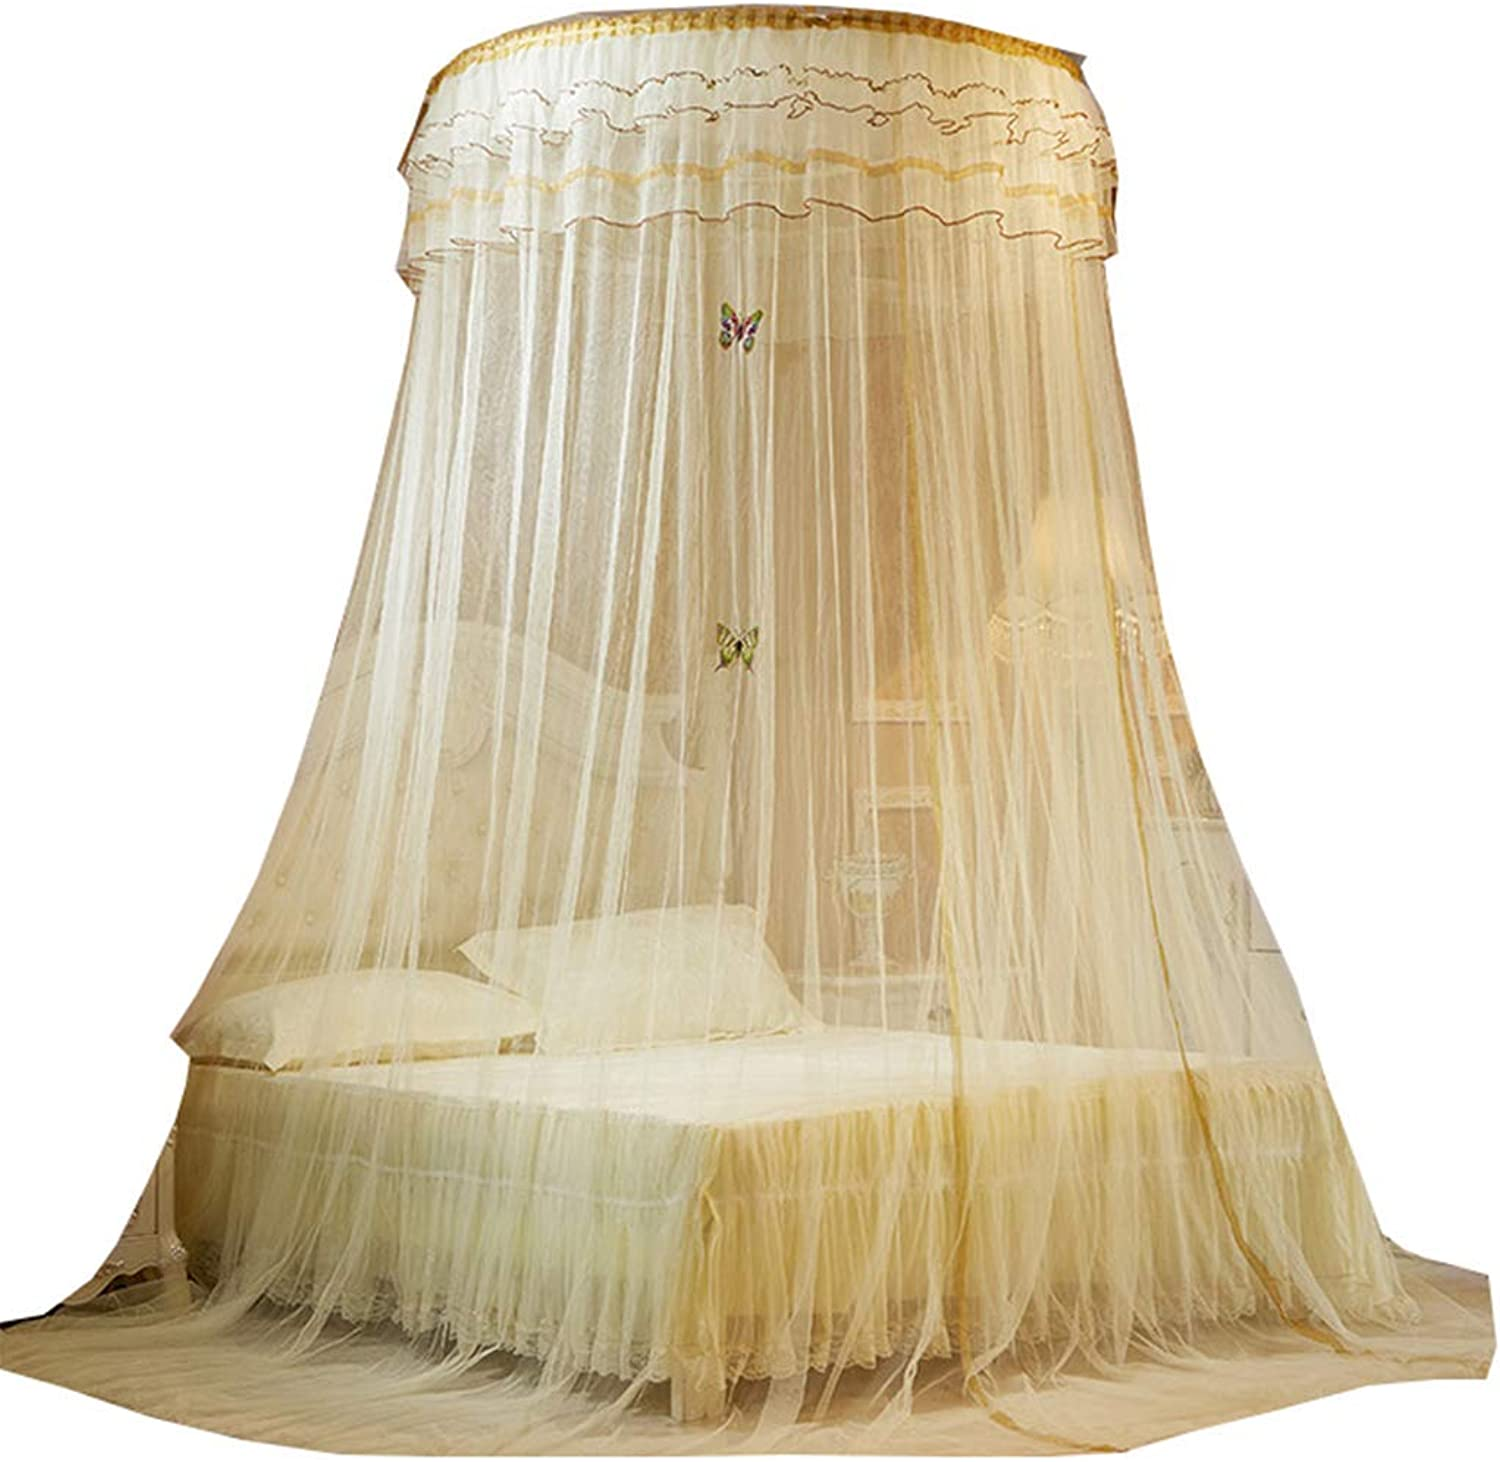 FLY Round Lace Curtain Dome Bed Canopy Netting Princess Mosquito Net,5